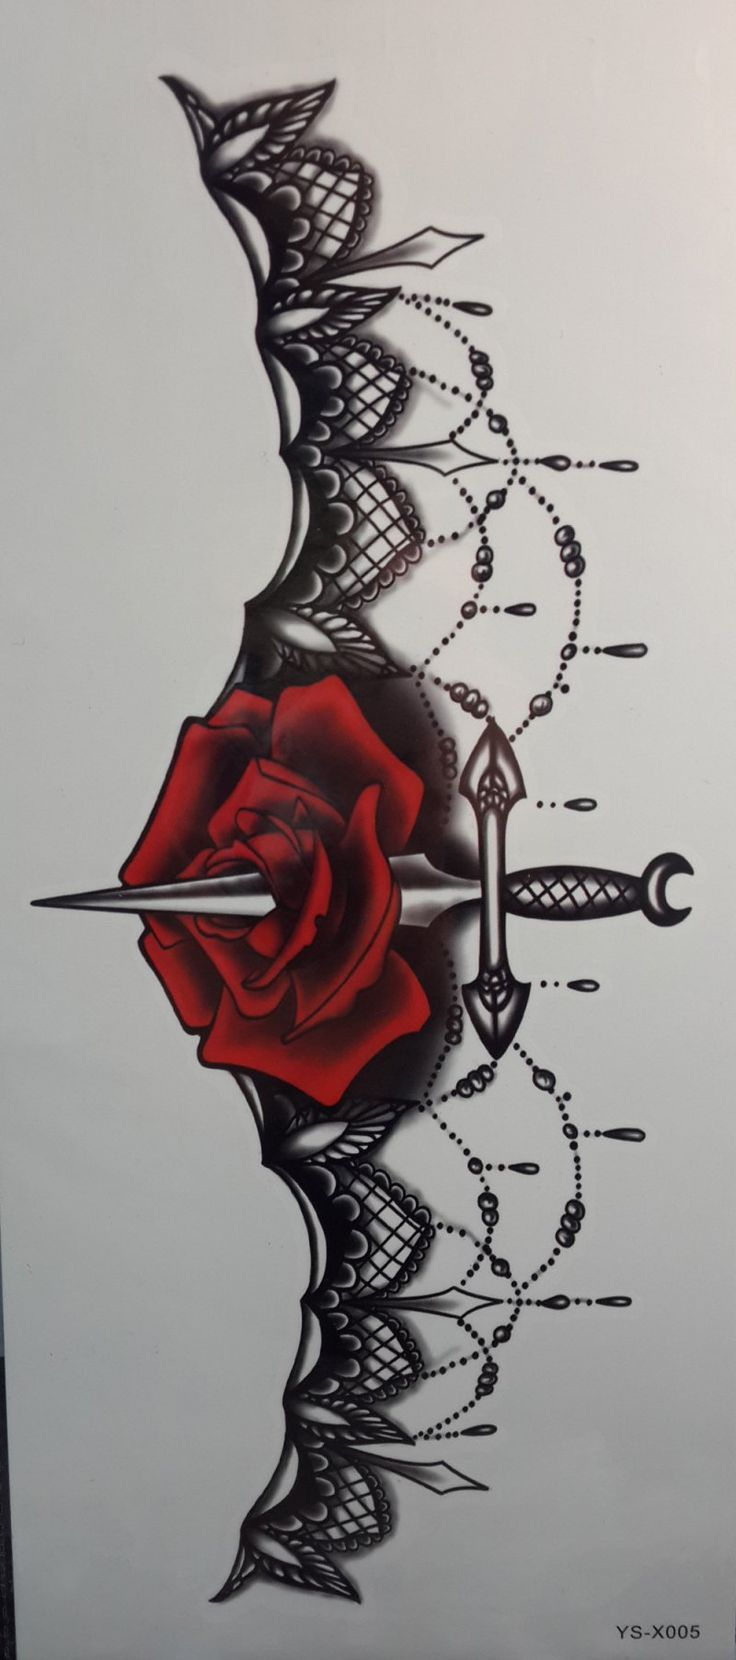 This would make a badass sternum tat